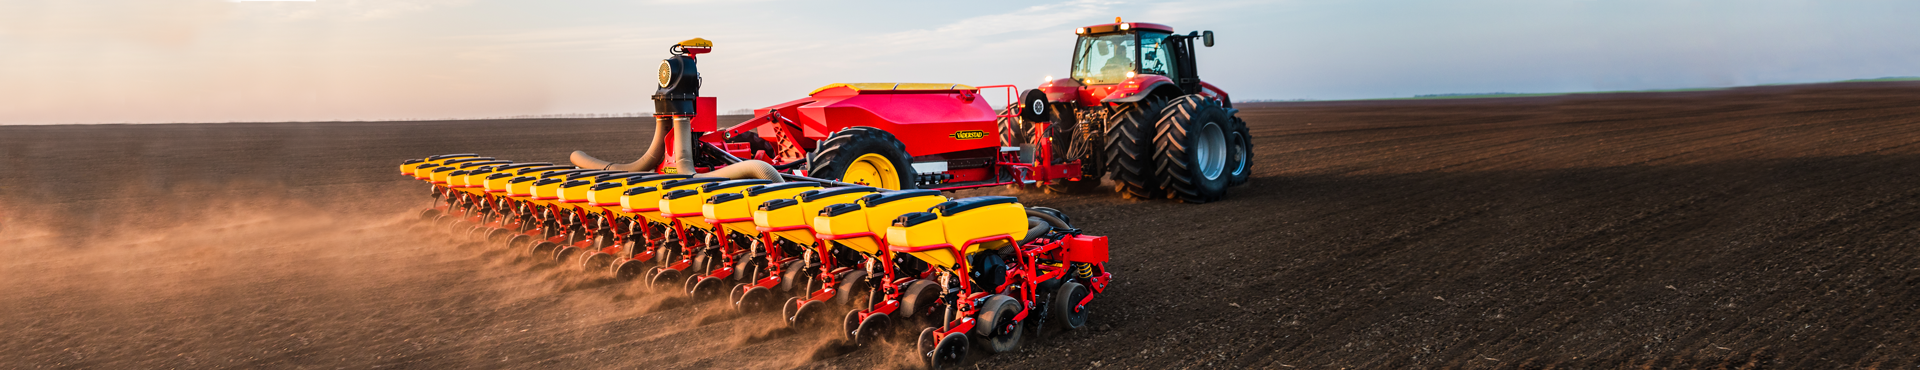 vaderstad-tempo-planter-page